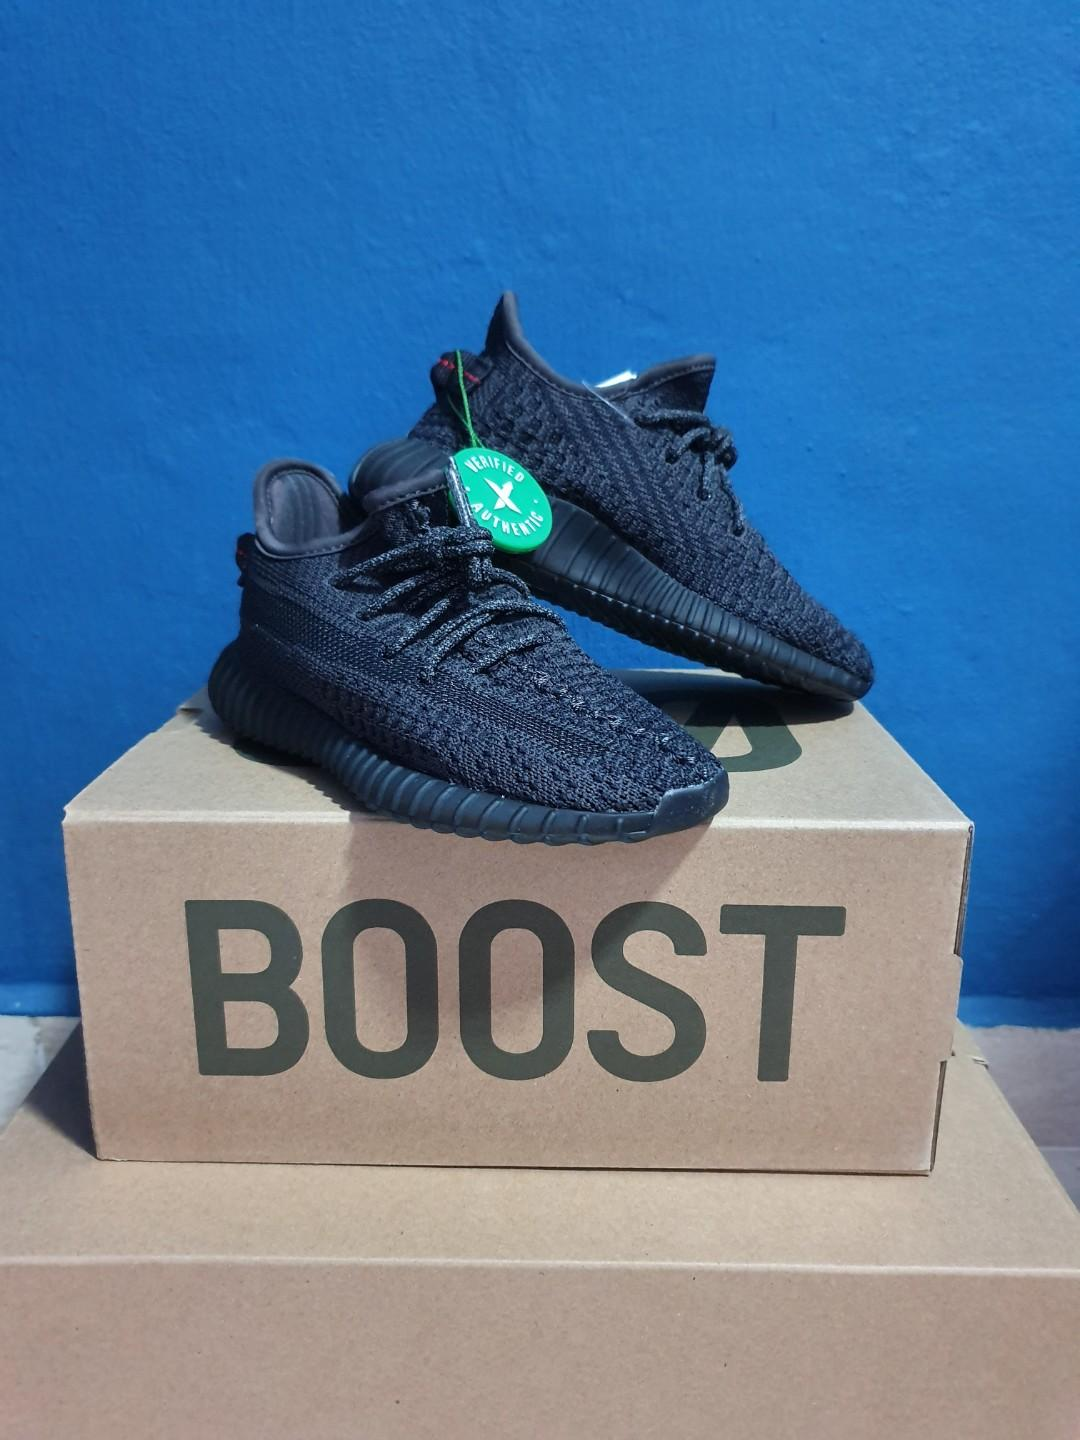 Yeezy Boost 350 V2 Black (Non-Reflective) Infant